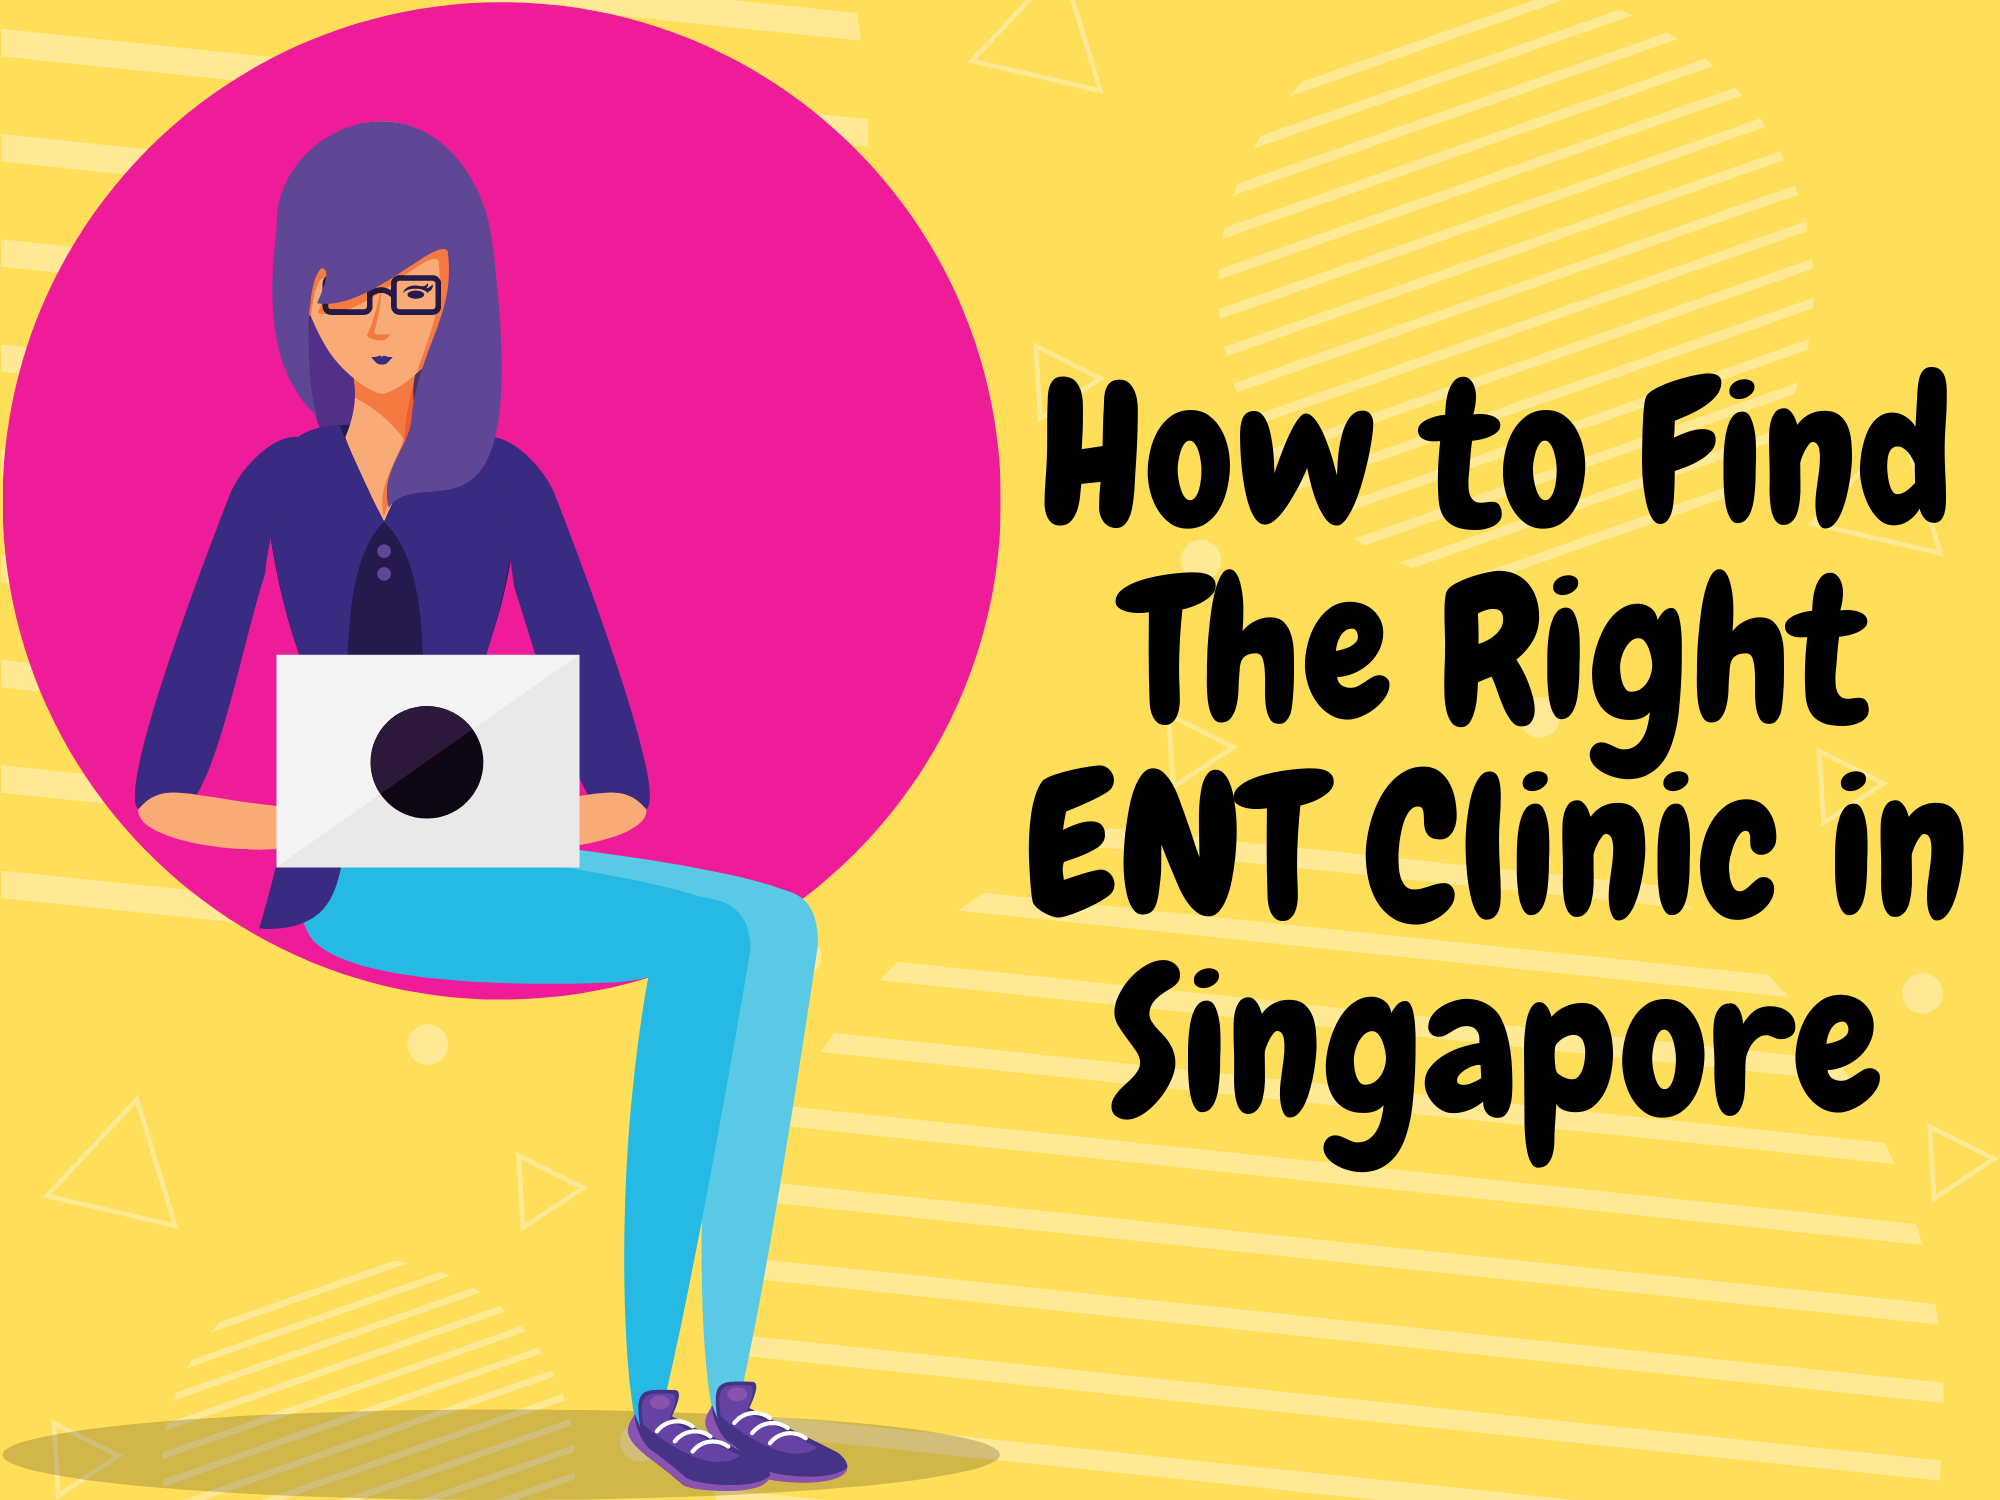 How-to-Find-The-Right-ENT-Clinic-in-Singapore